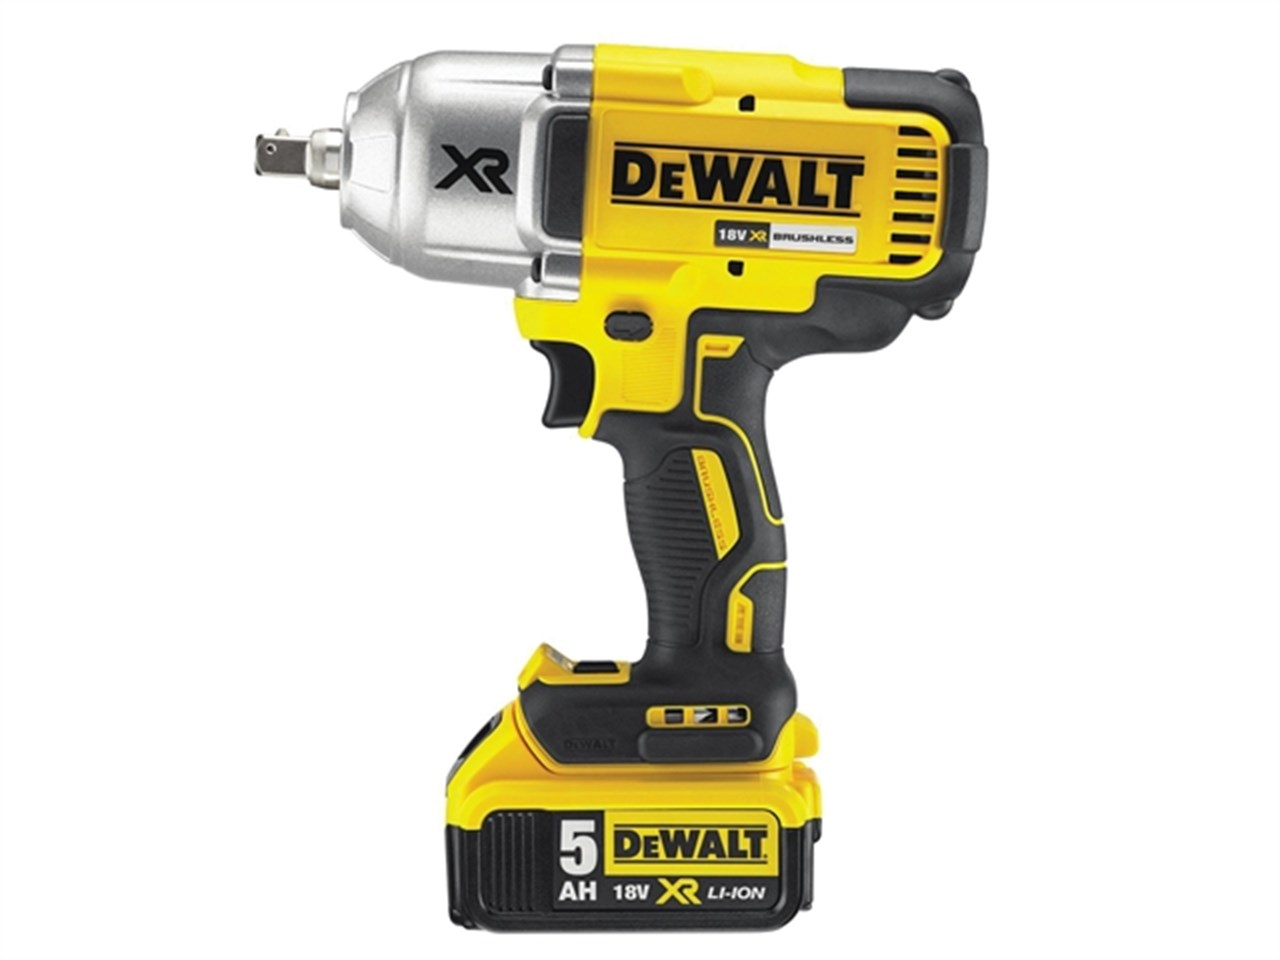 dewalt dcf899p2 xr 1 2 impact wrench 950nm 2 x 5ah. Black Bedroom Furniture Sets. Home Design Ideas